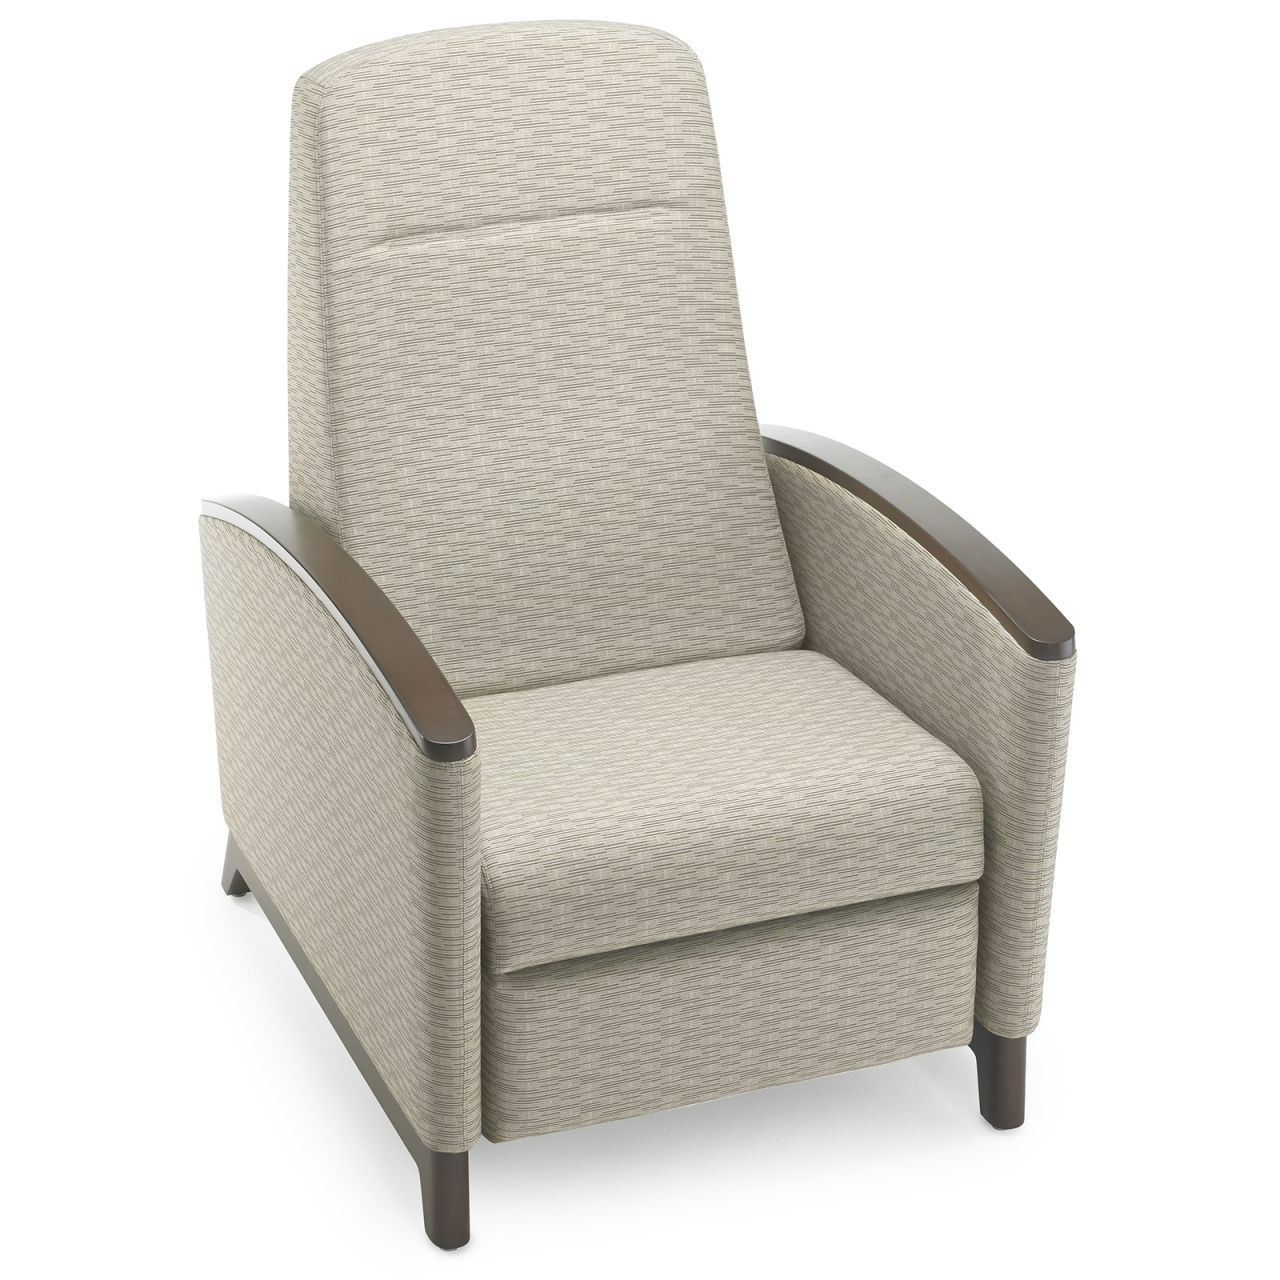 Reclining patient chair / on casters / manual Horizon Nemschoff ...  sc 1 st  MedicalExpo & Reclining patient chair / on casters / manual - Horizon - Nemschoff islam-shia.org